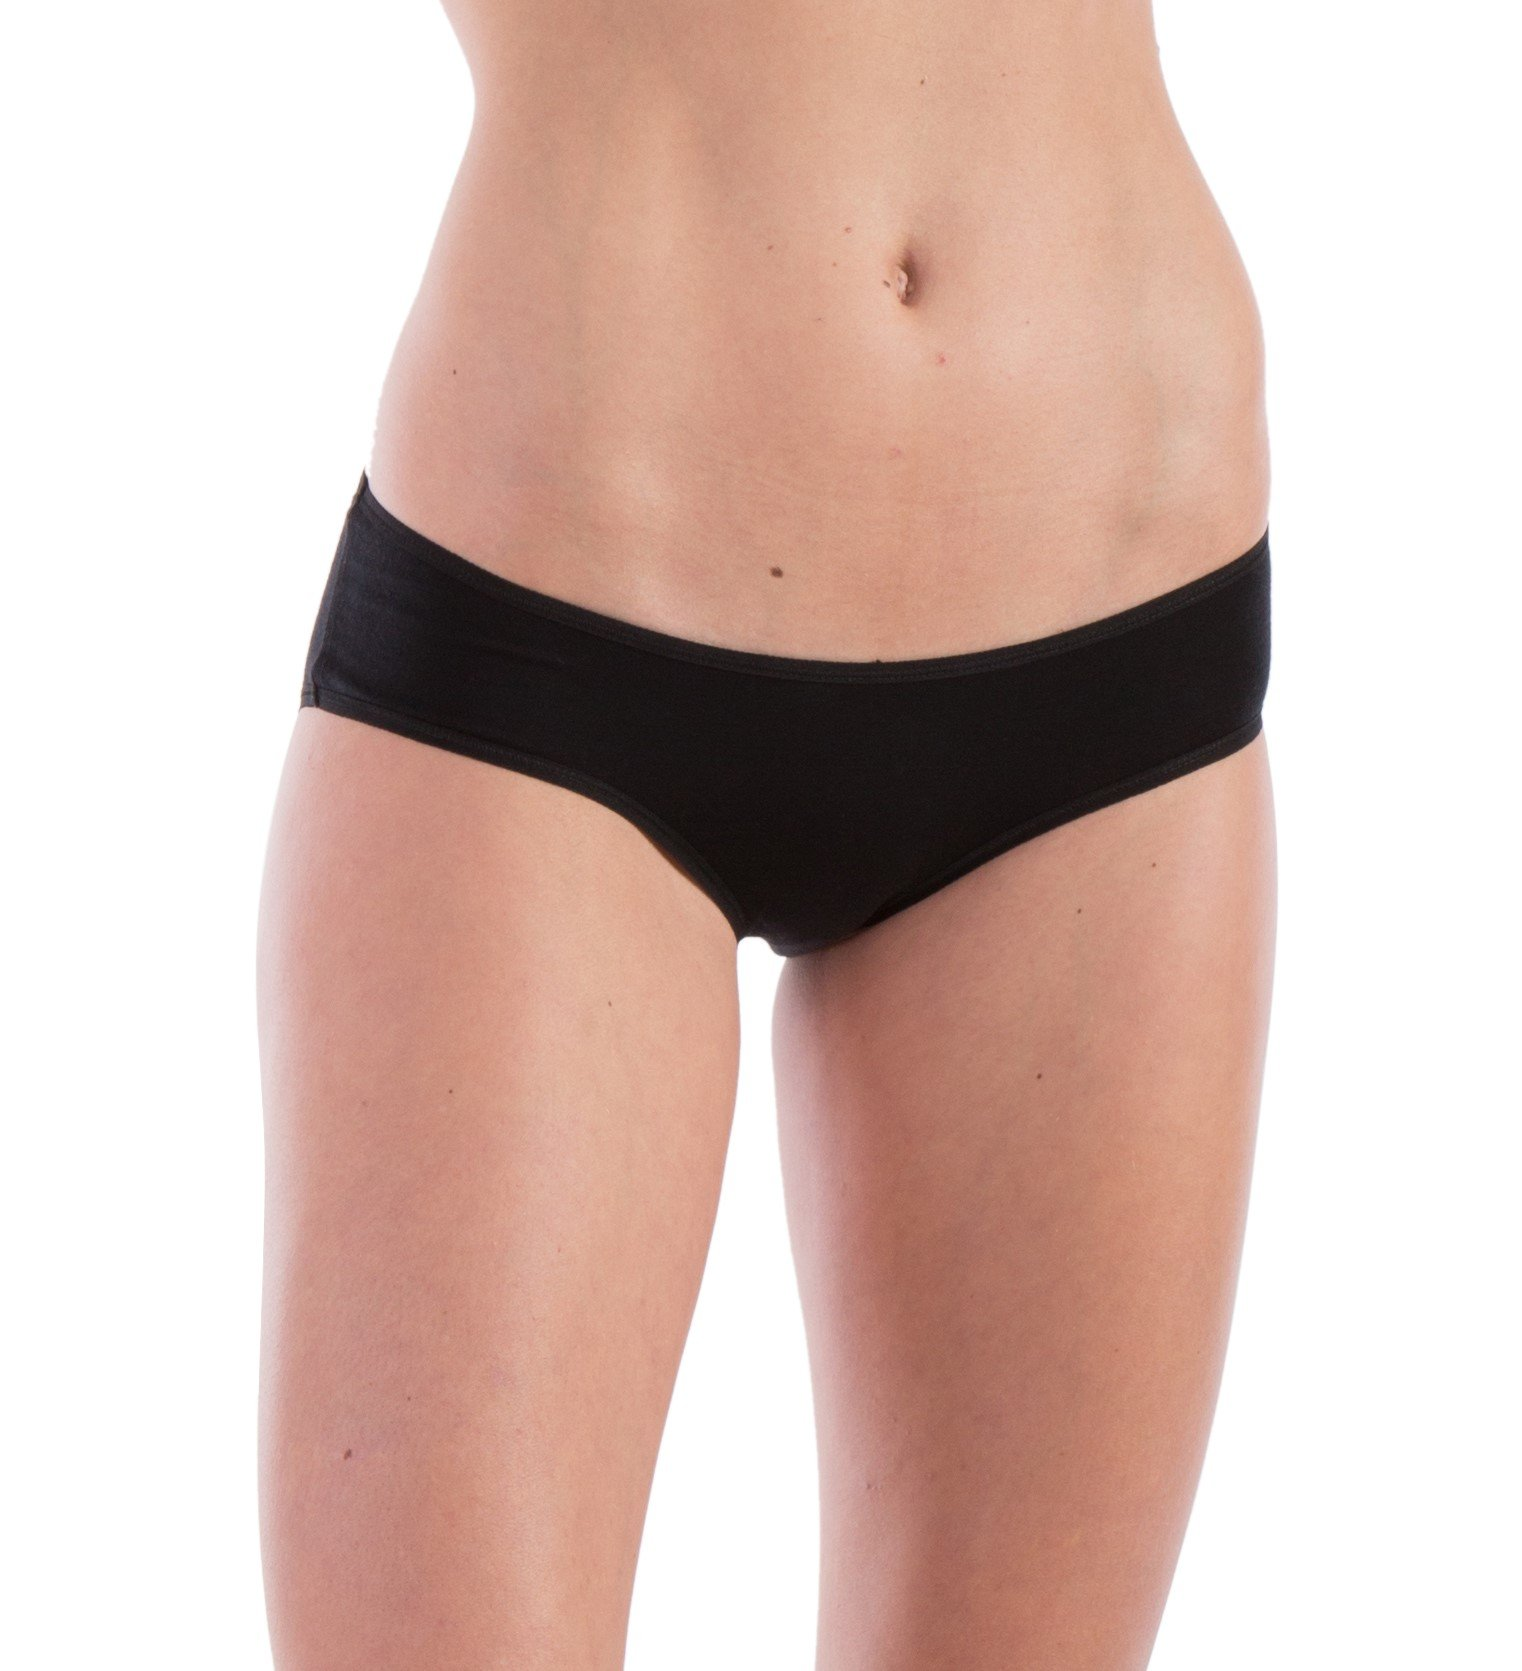 Woolly Clothing Women's Merino Hiphugger Brief - Moisture Wicking, Anti-Odor, Casual Athletic wear XL BLK